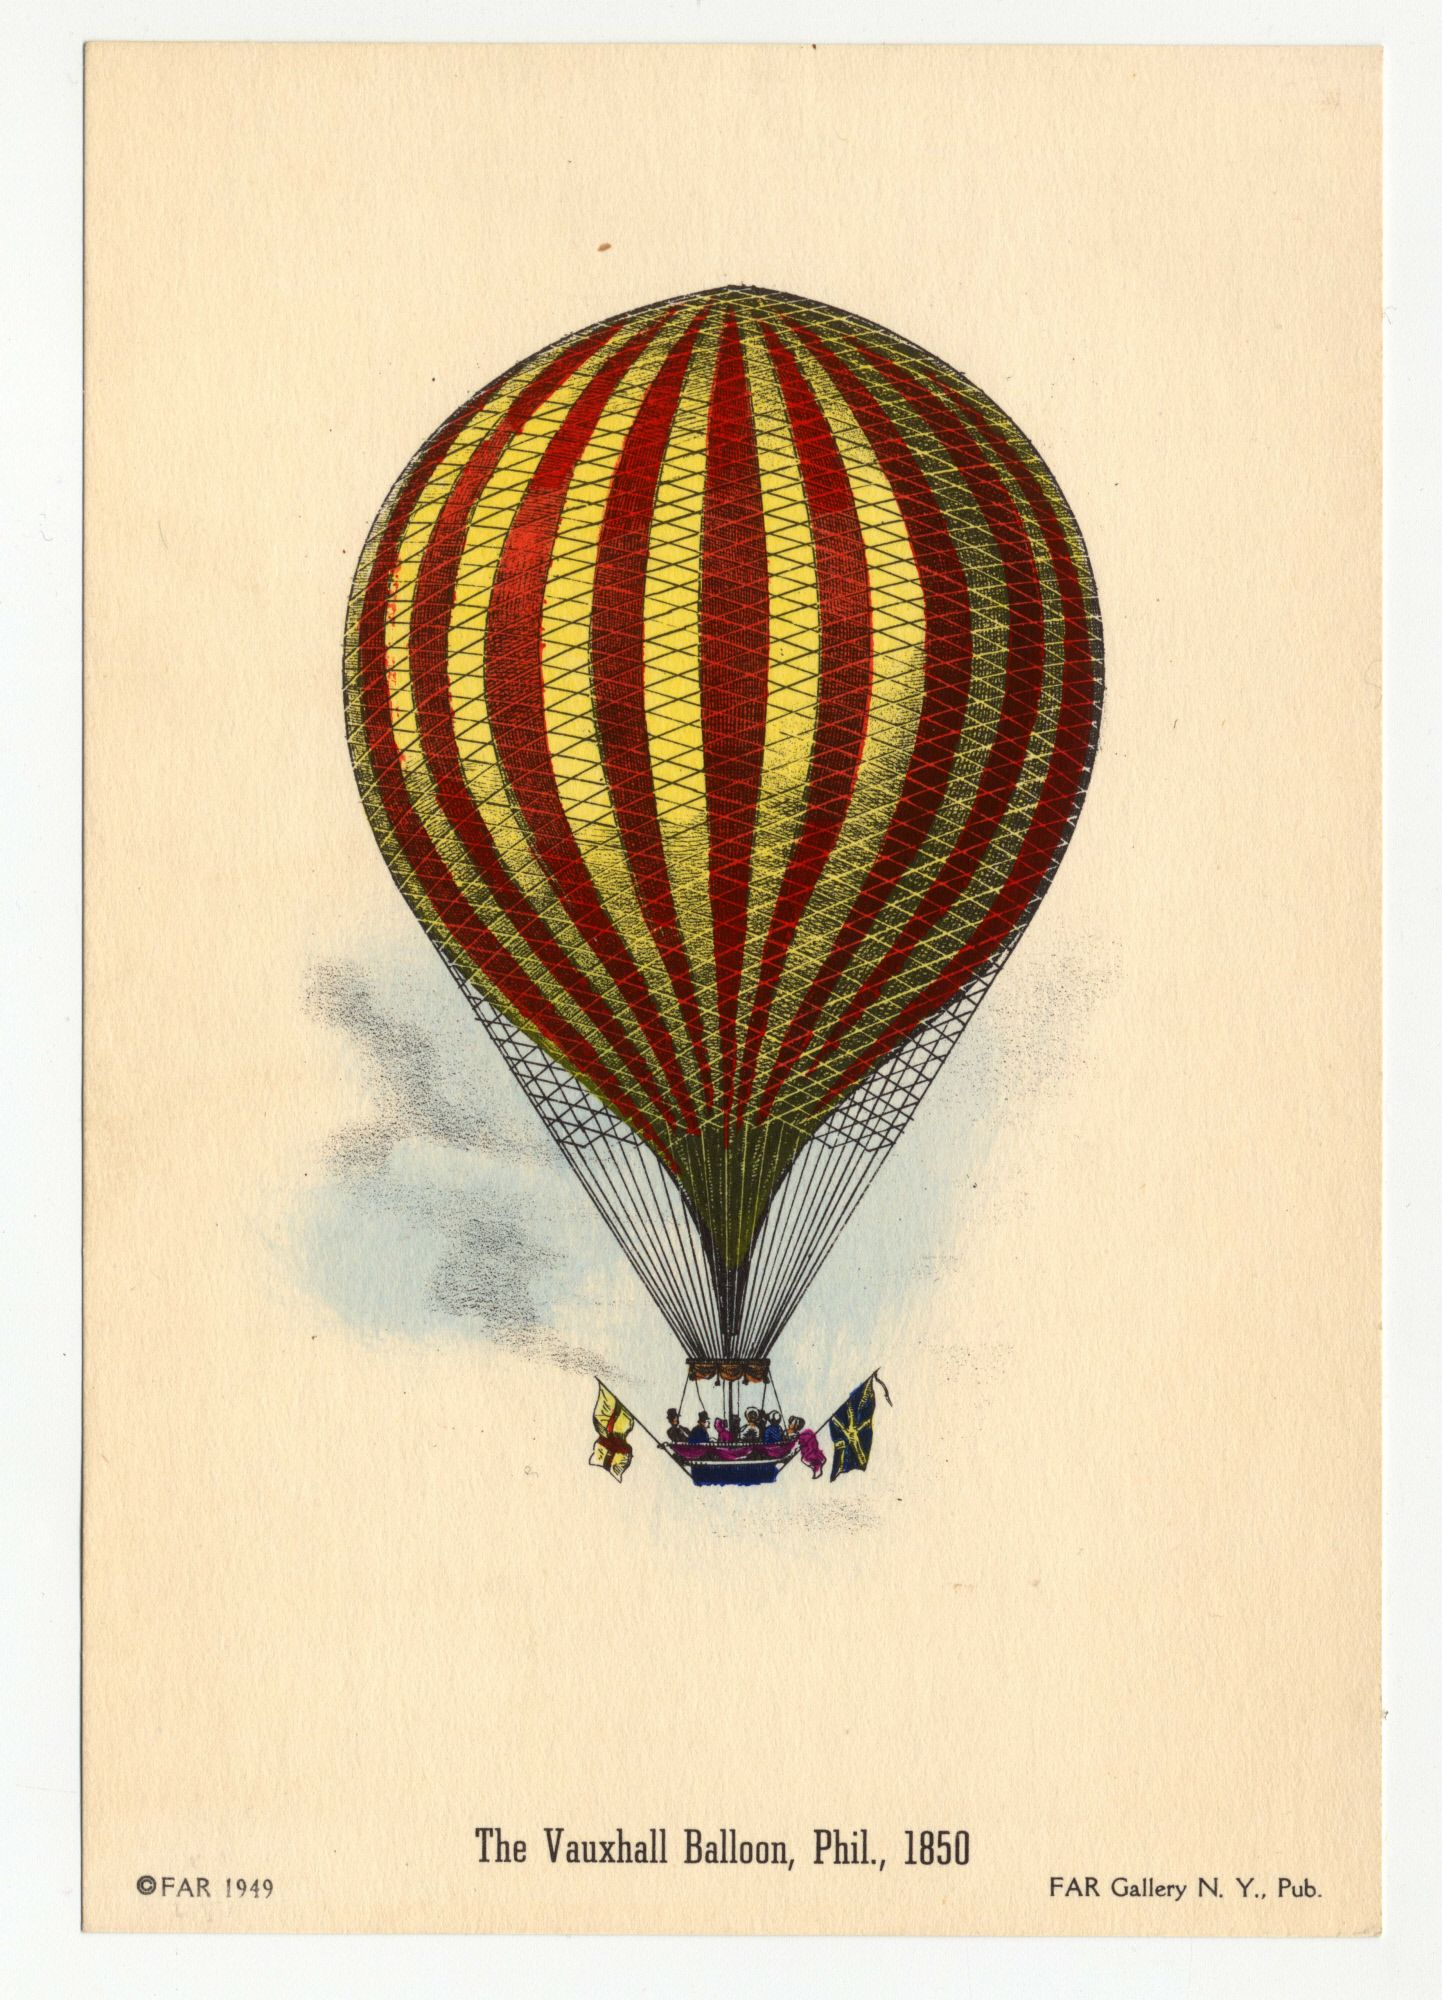 Vintage Hot Air Balloon | Vintage Ephemera | Pinterest ...